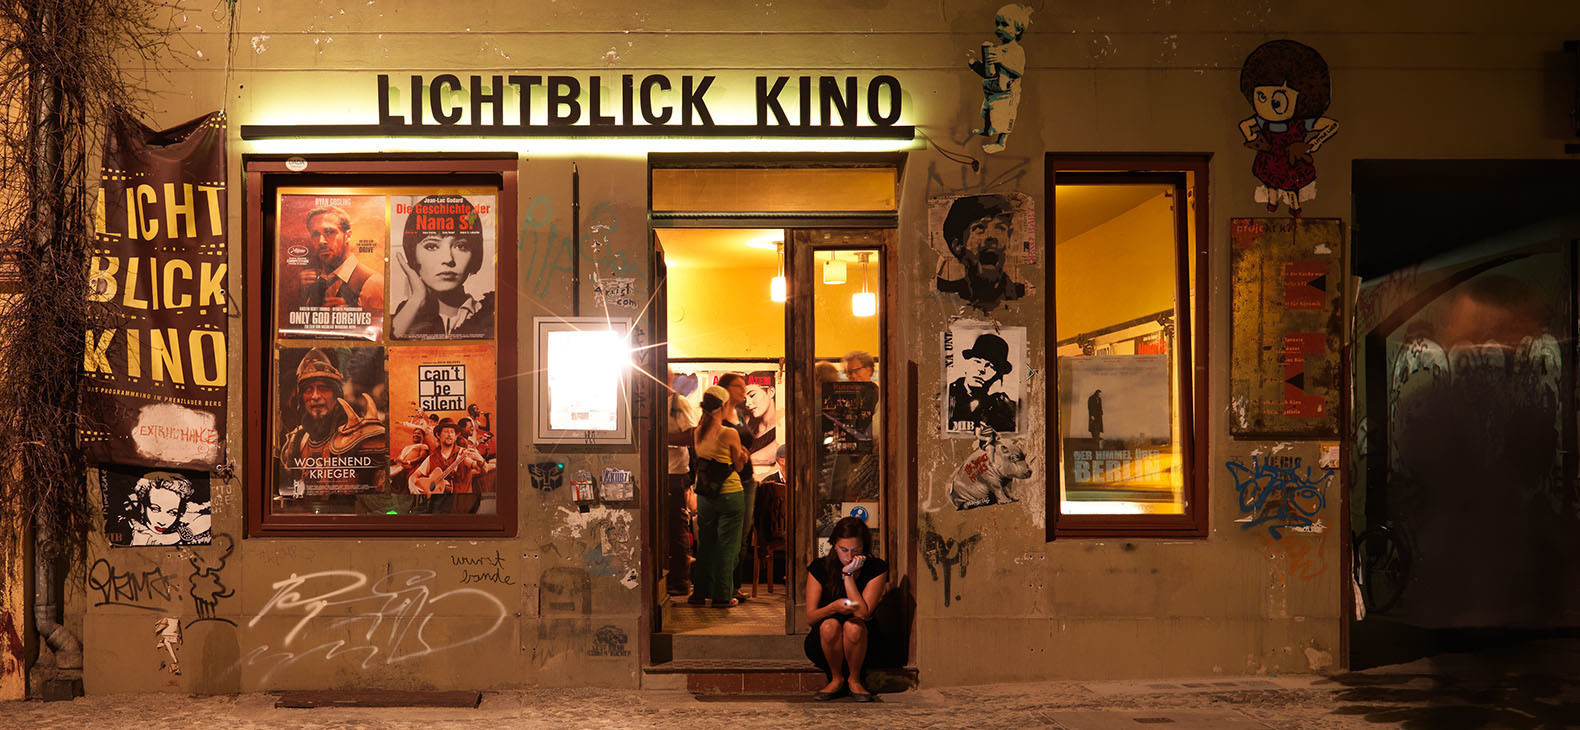 Richard Thieler: Kino